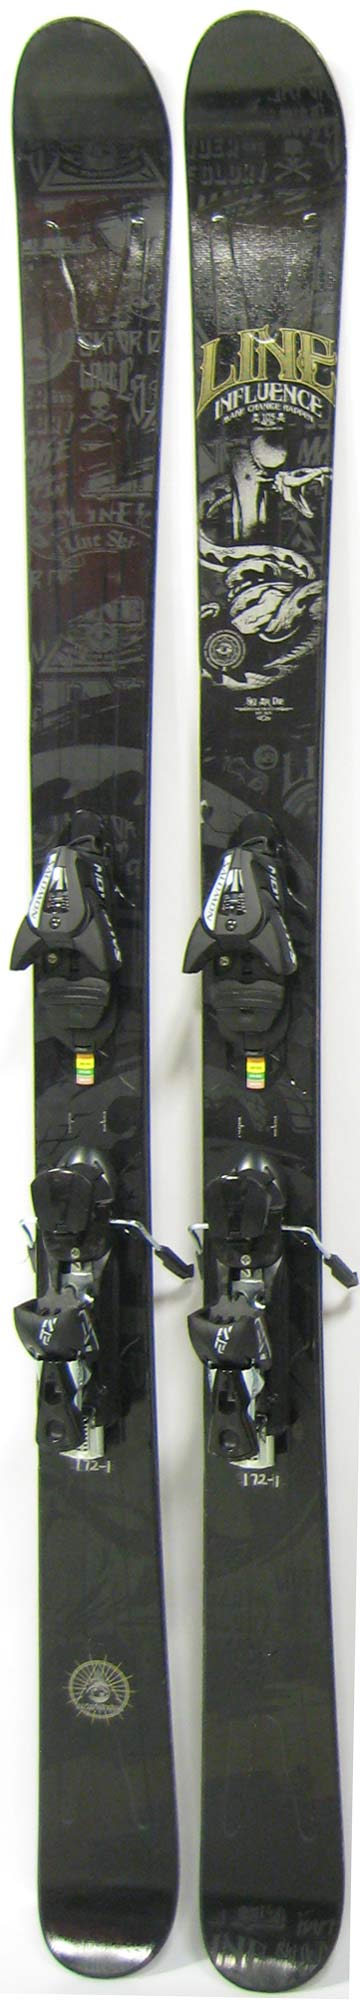 Topsheets of 2012 Line Influence 105 Skis For Sale